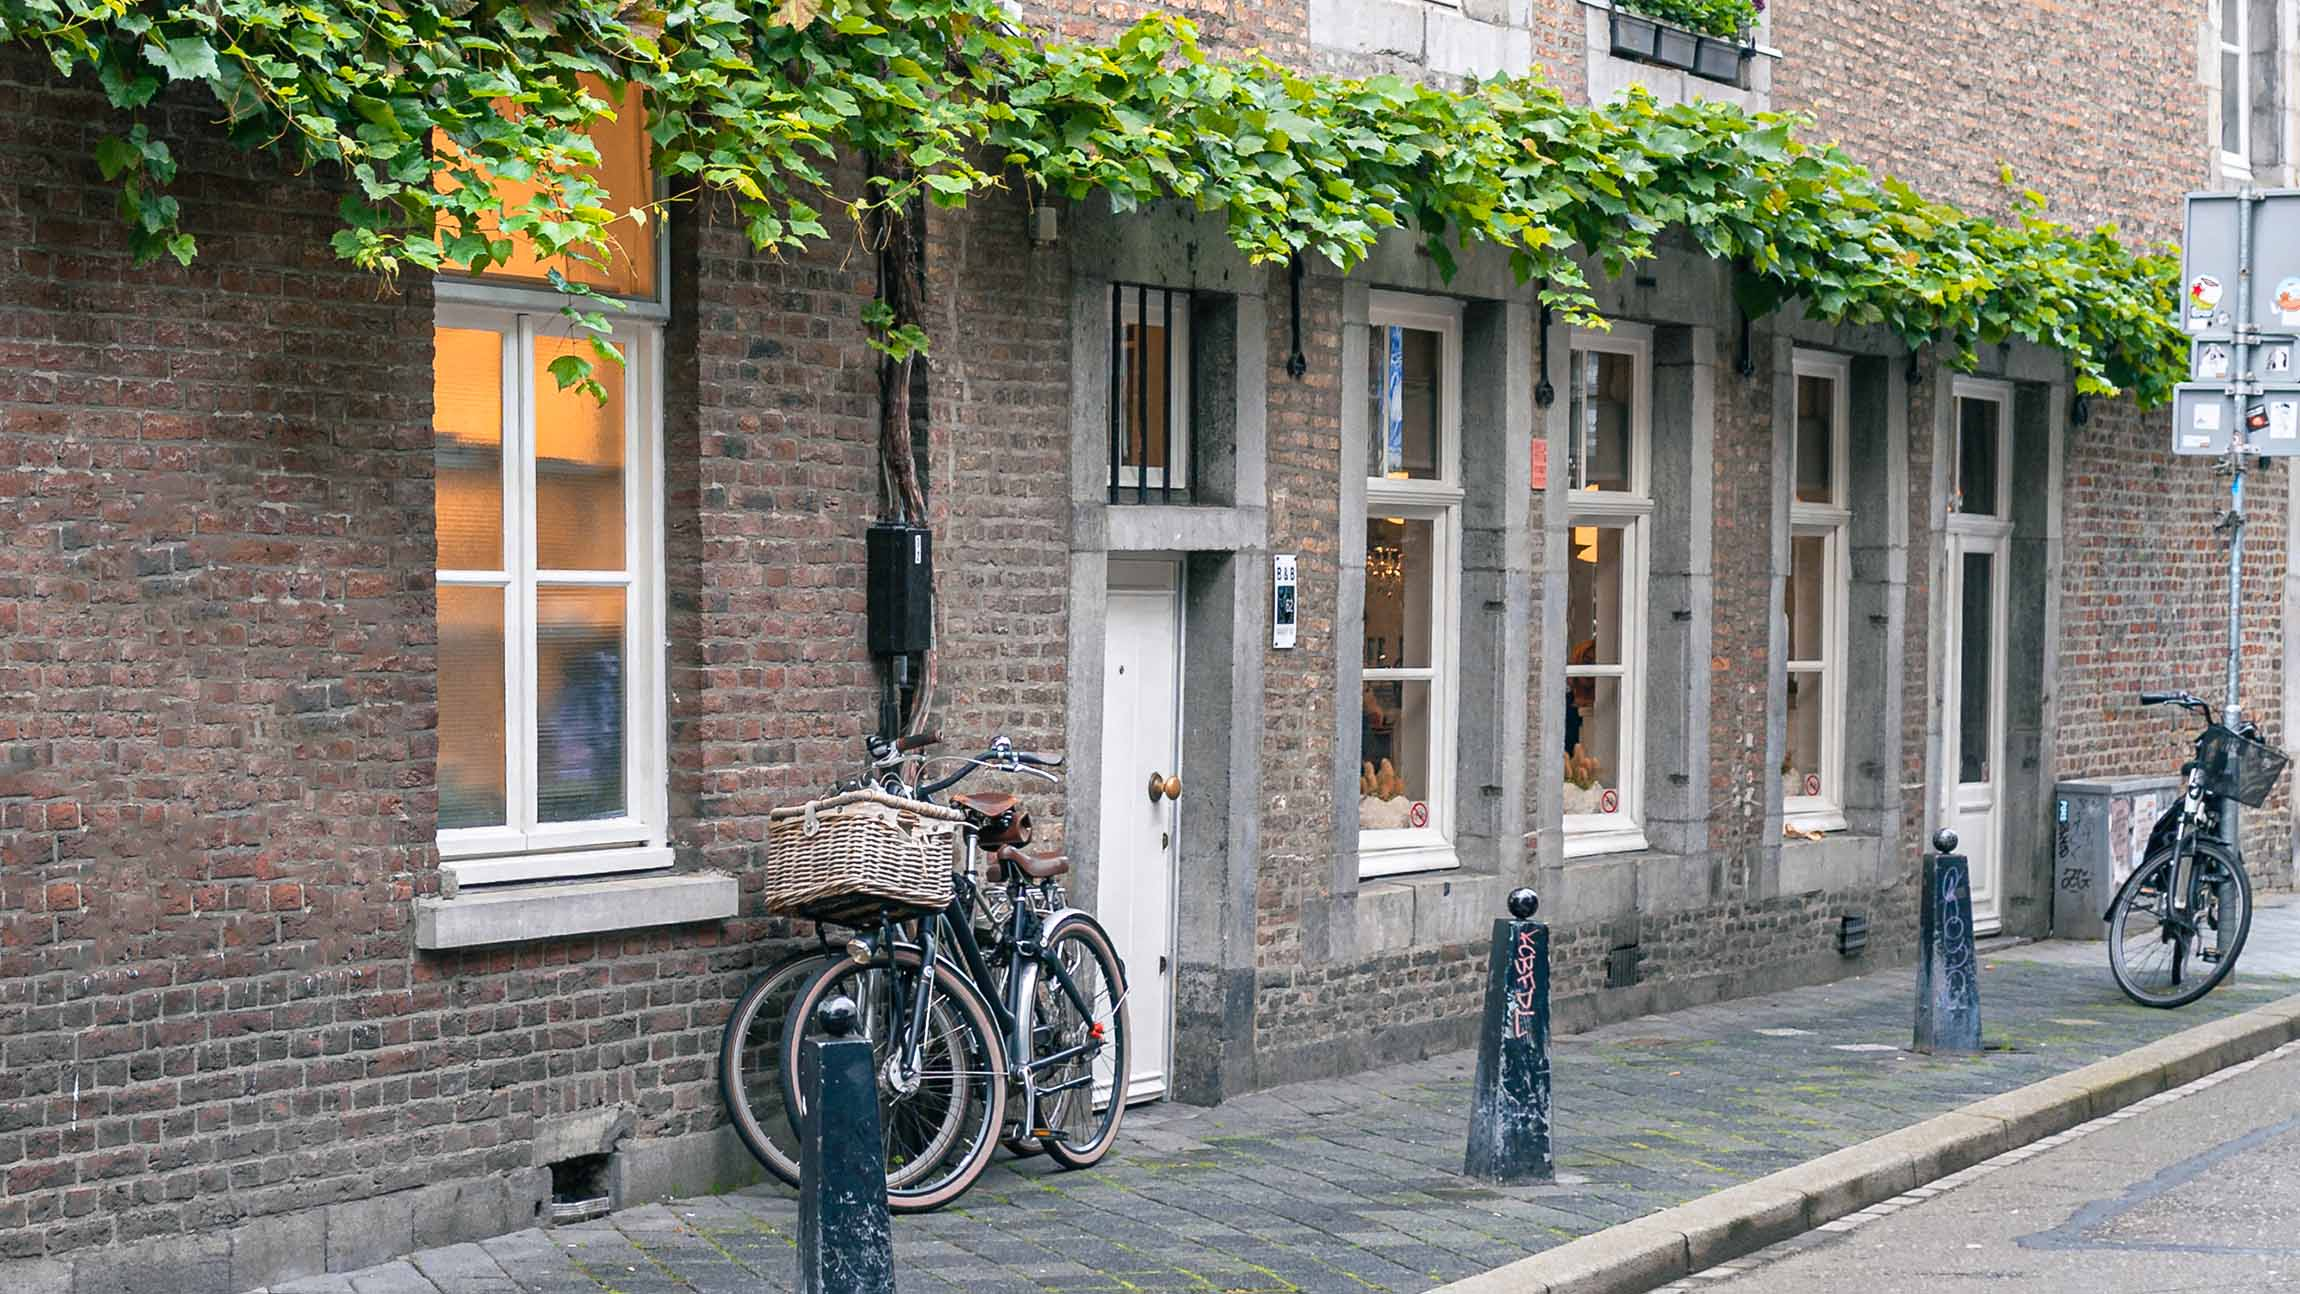 Outside view of the small streets next to Gracht 62